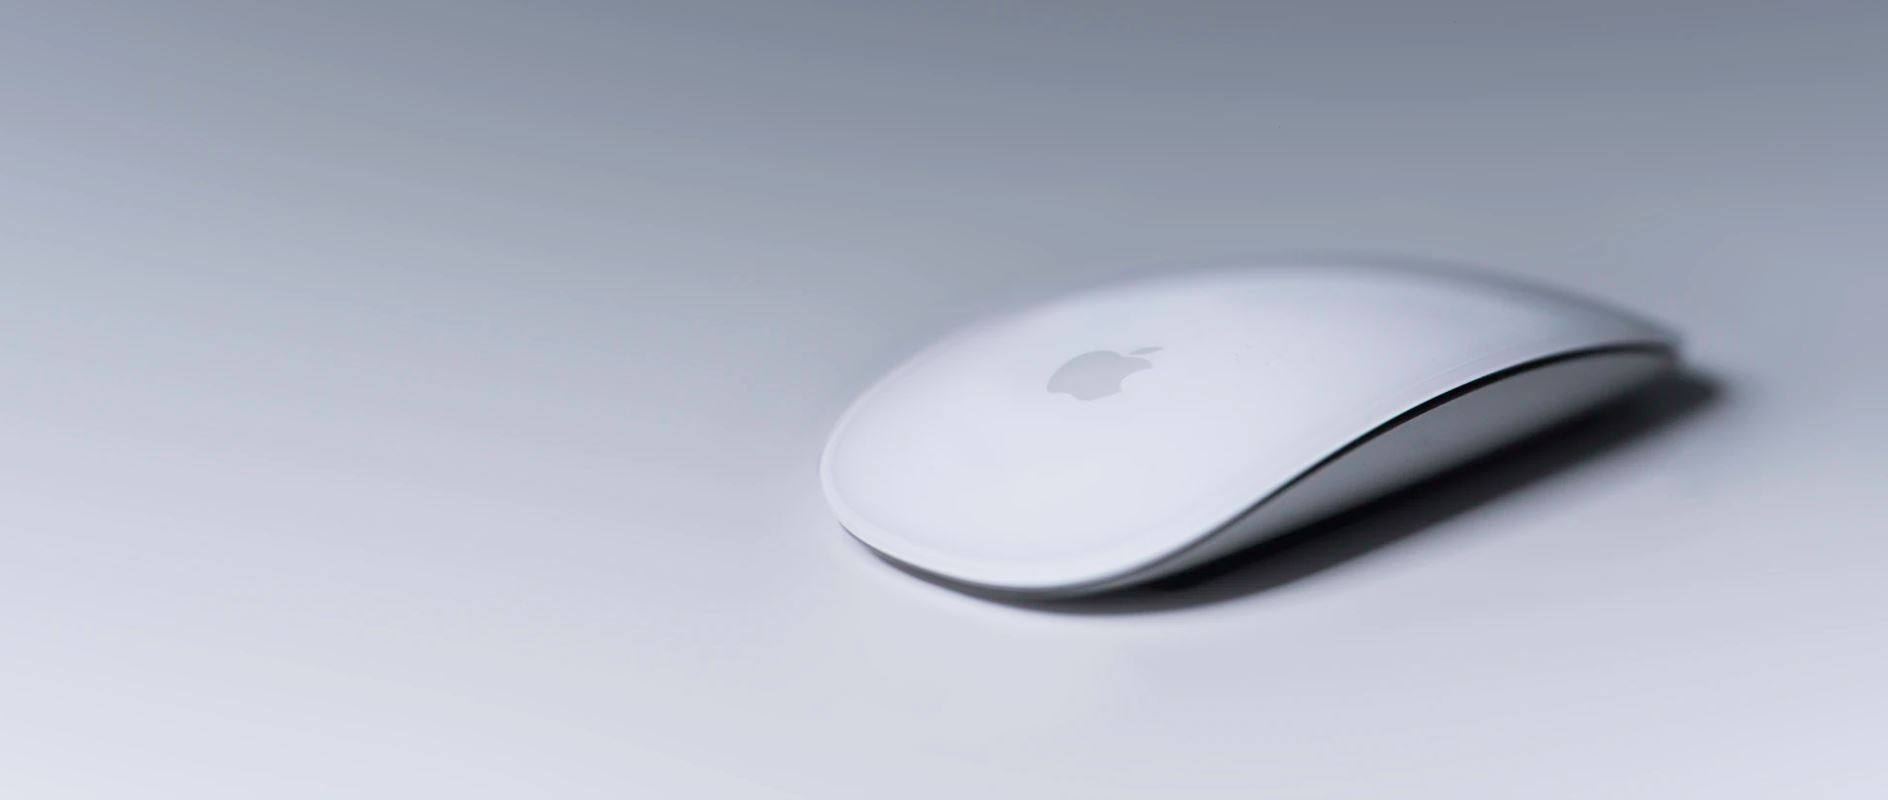 Computer mouse clicker